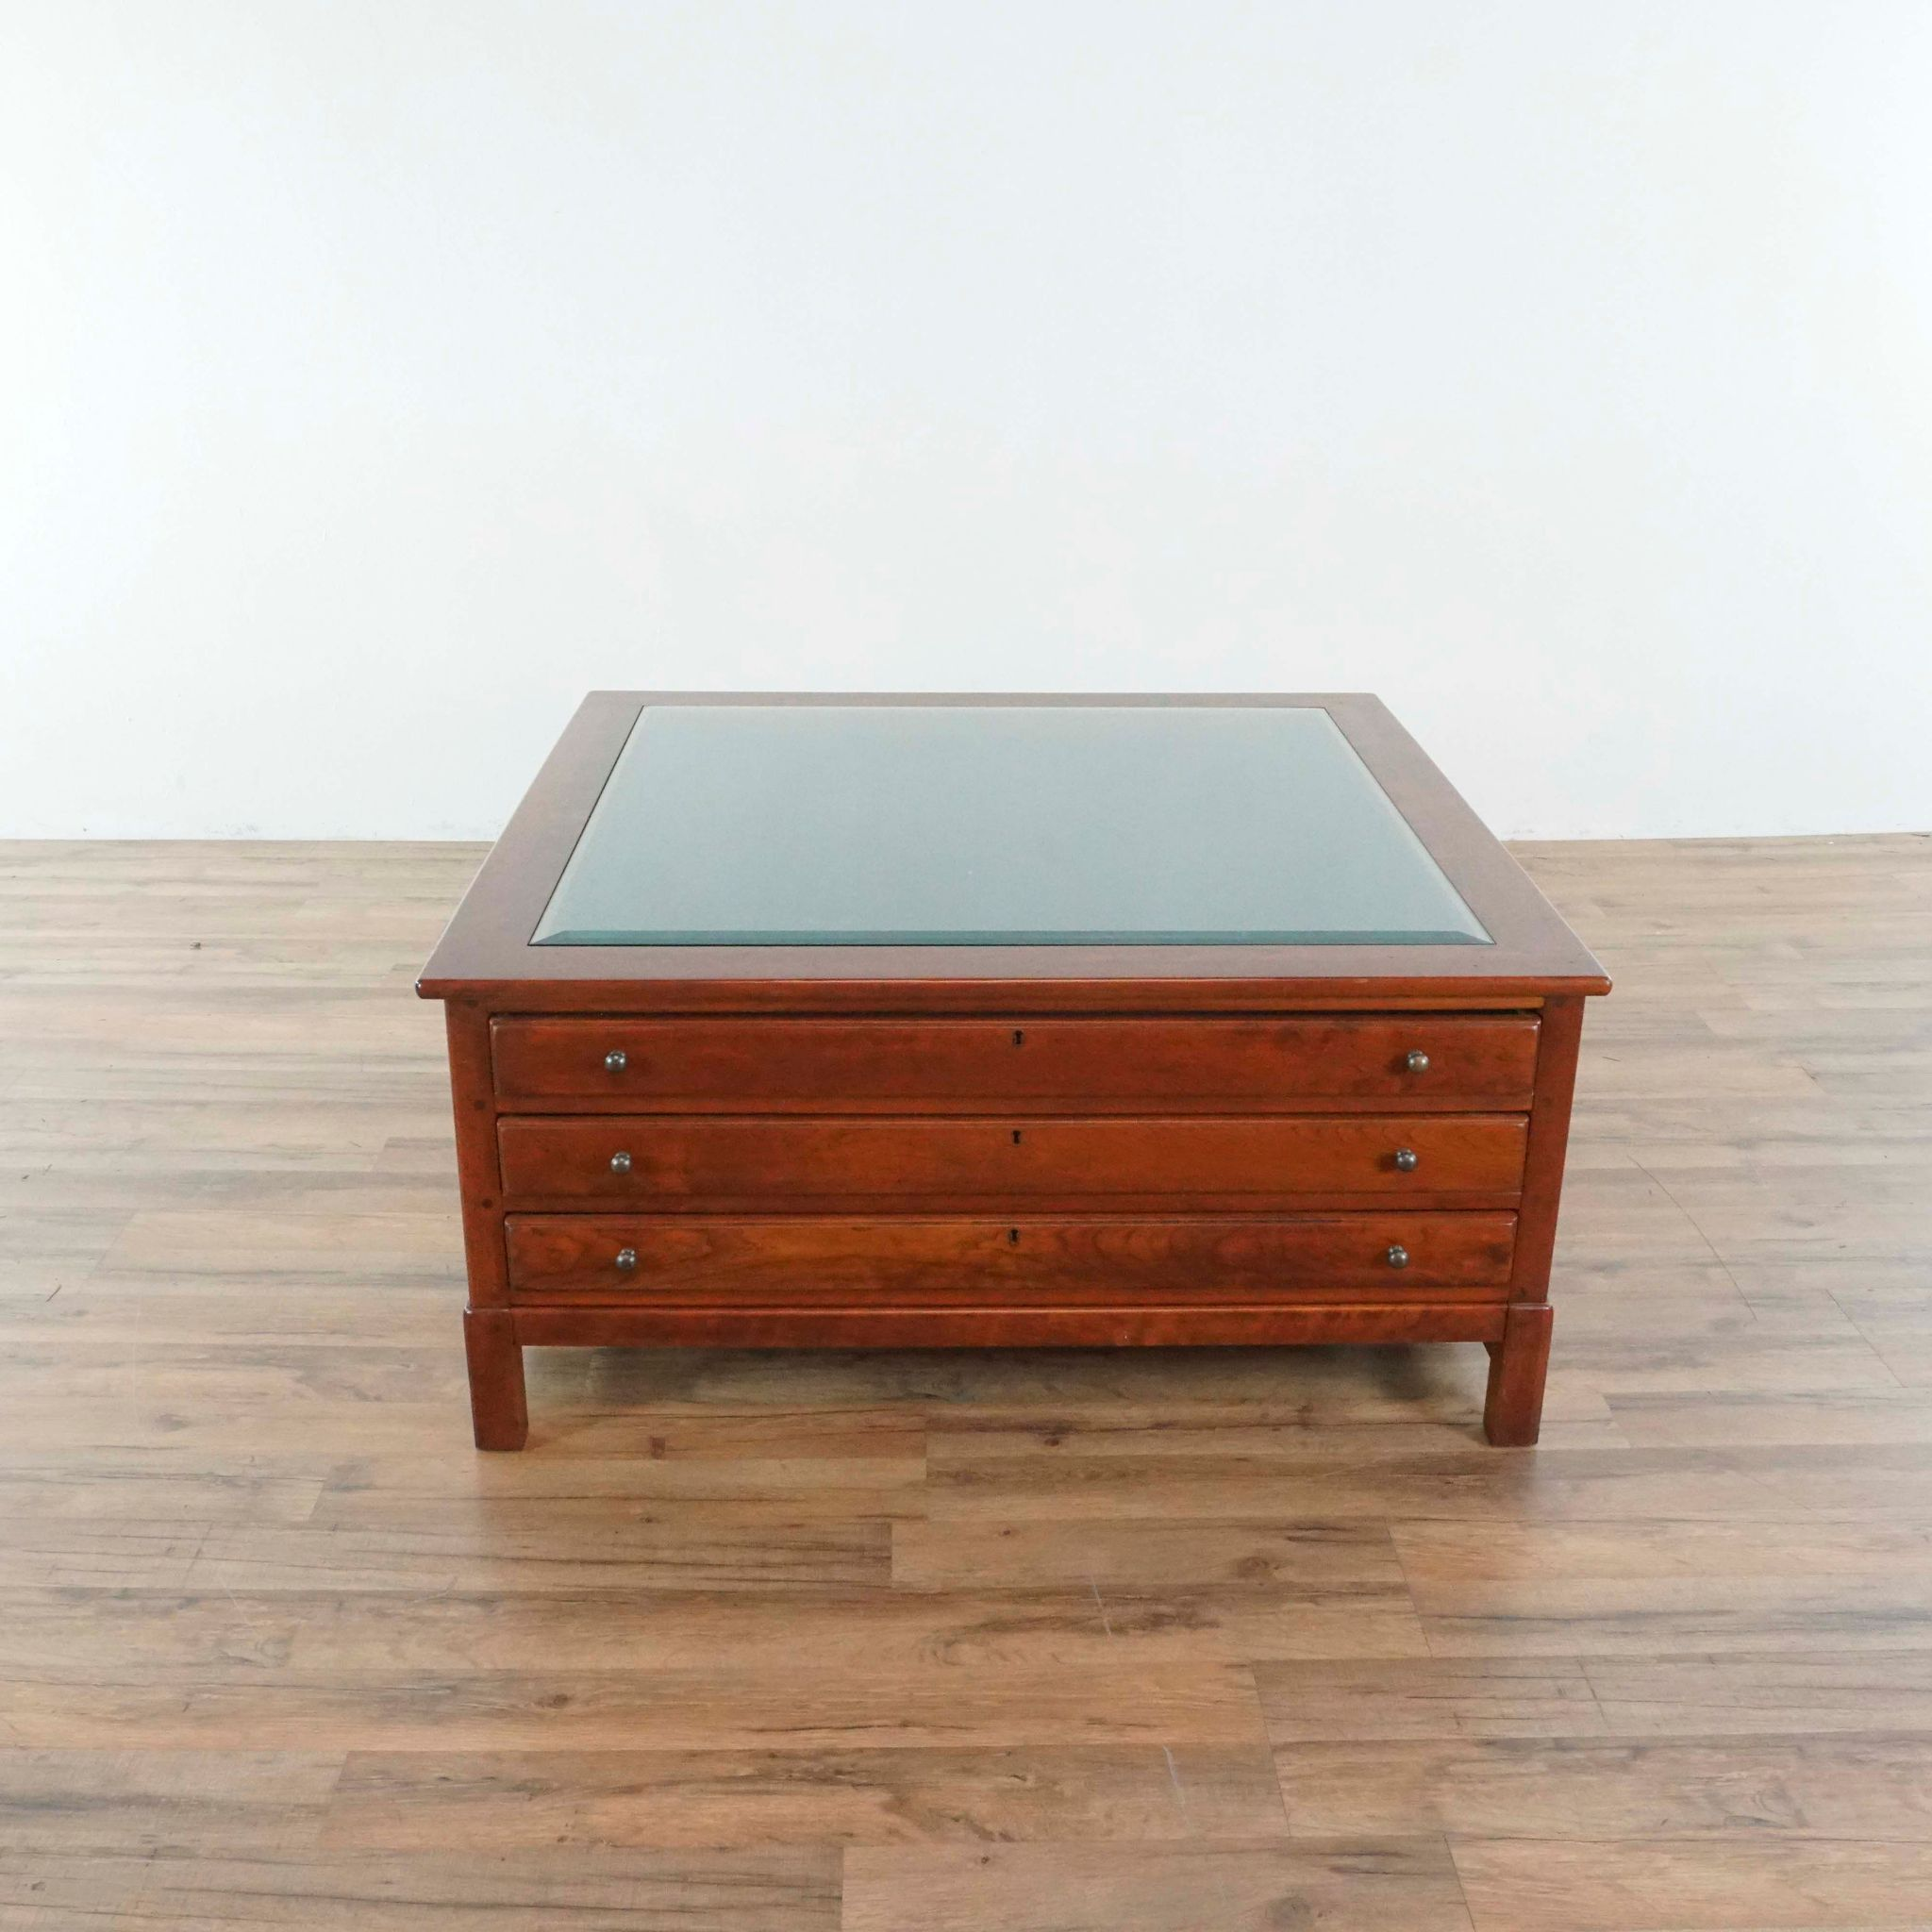 Lexington Timberlake Map Table Div P Solid Cherry Wood Coffee Table With Beveled Glass Top A Cherry Wood Coffee Table Lexington Furniture Coffee Table Wood [ 2048 x 2048 Pixel ]